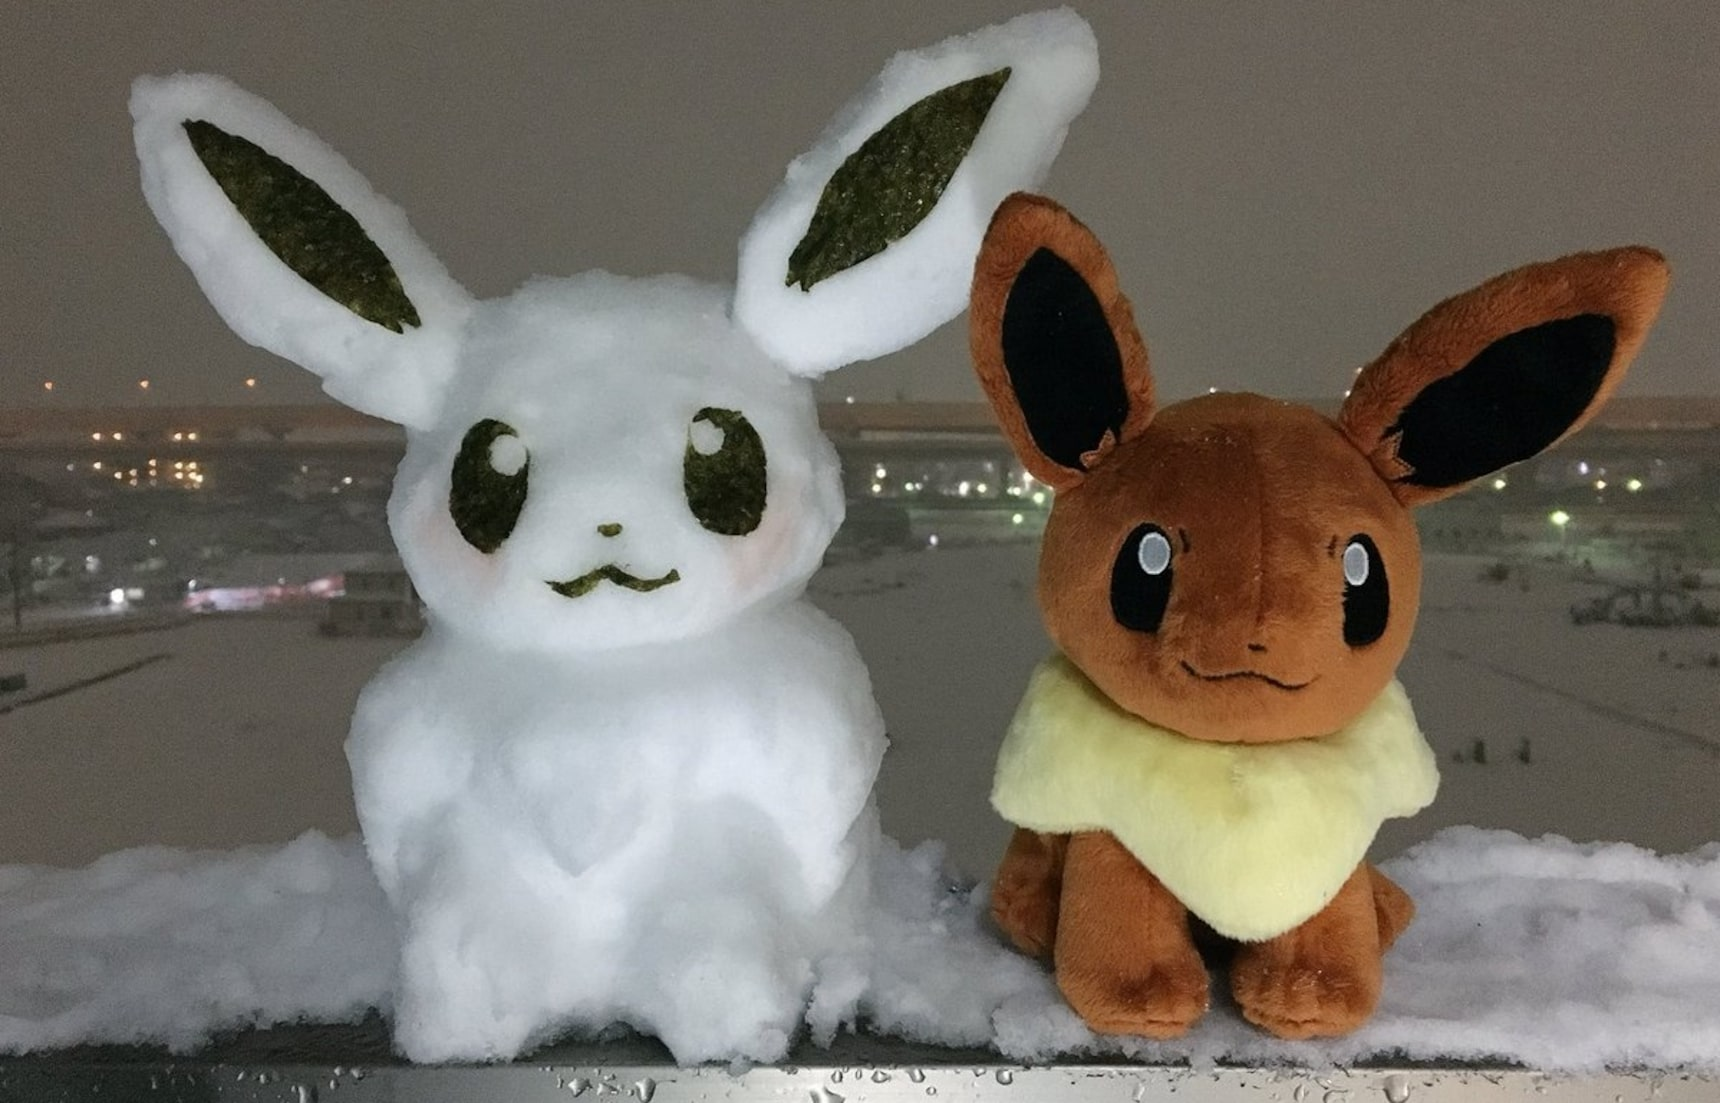 Do You Wanna Build a Snow Pokemon?